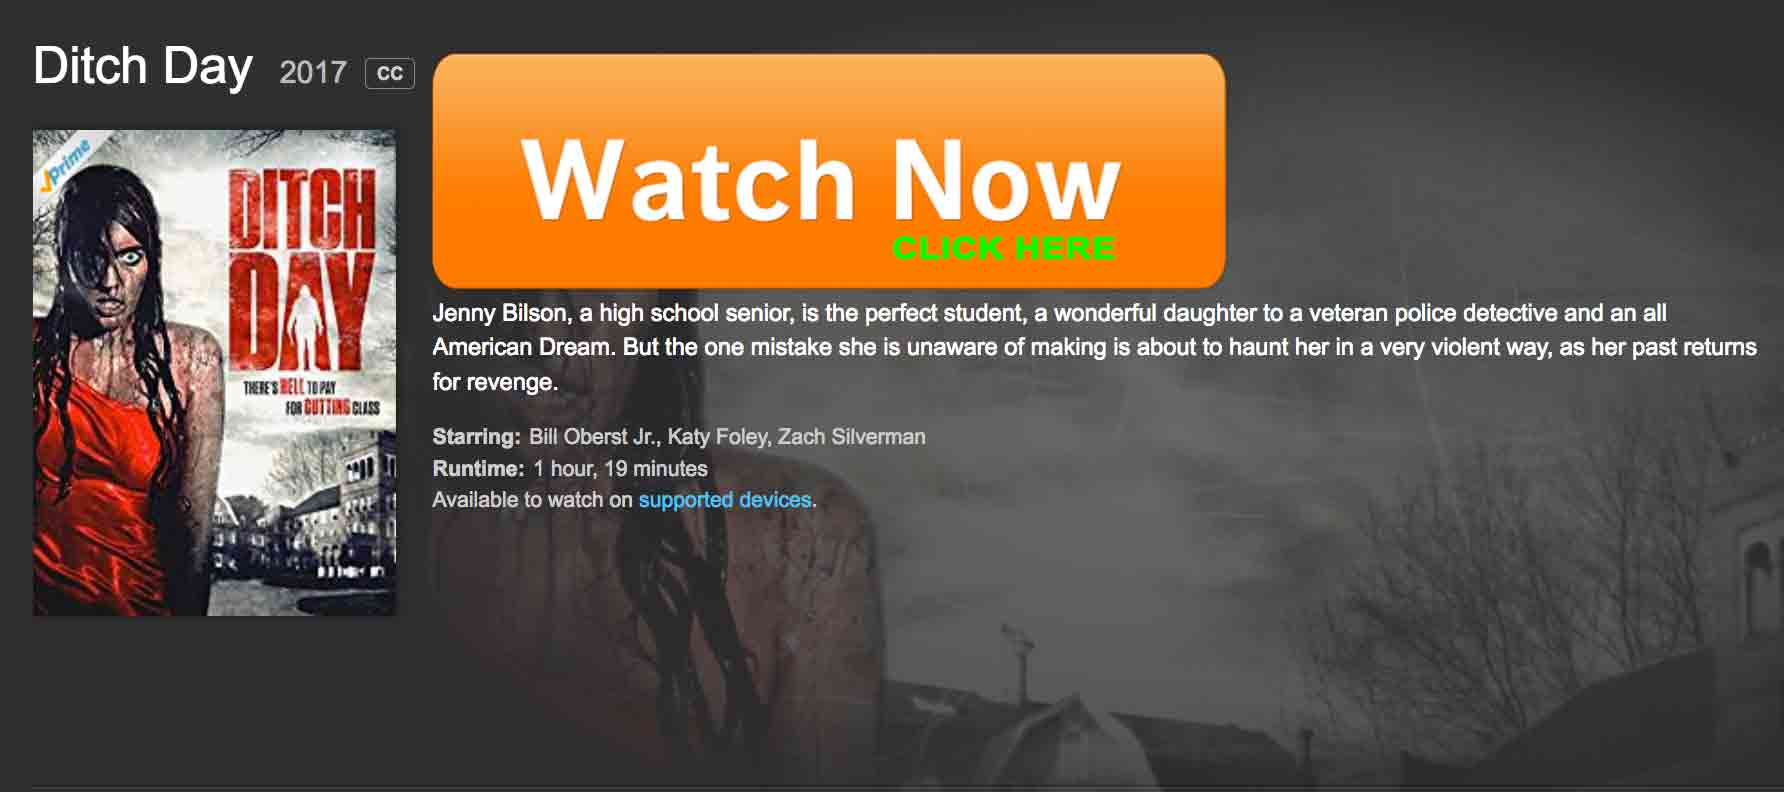 Ditch is currently available for rent and purchase at AMAZON.  Prime members may enjoy film as part of their prime membership.